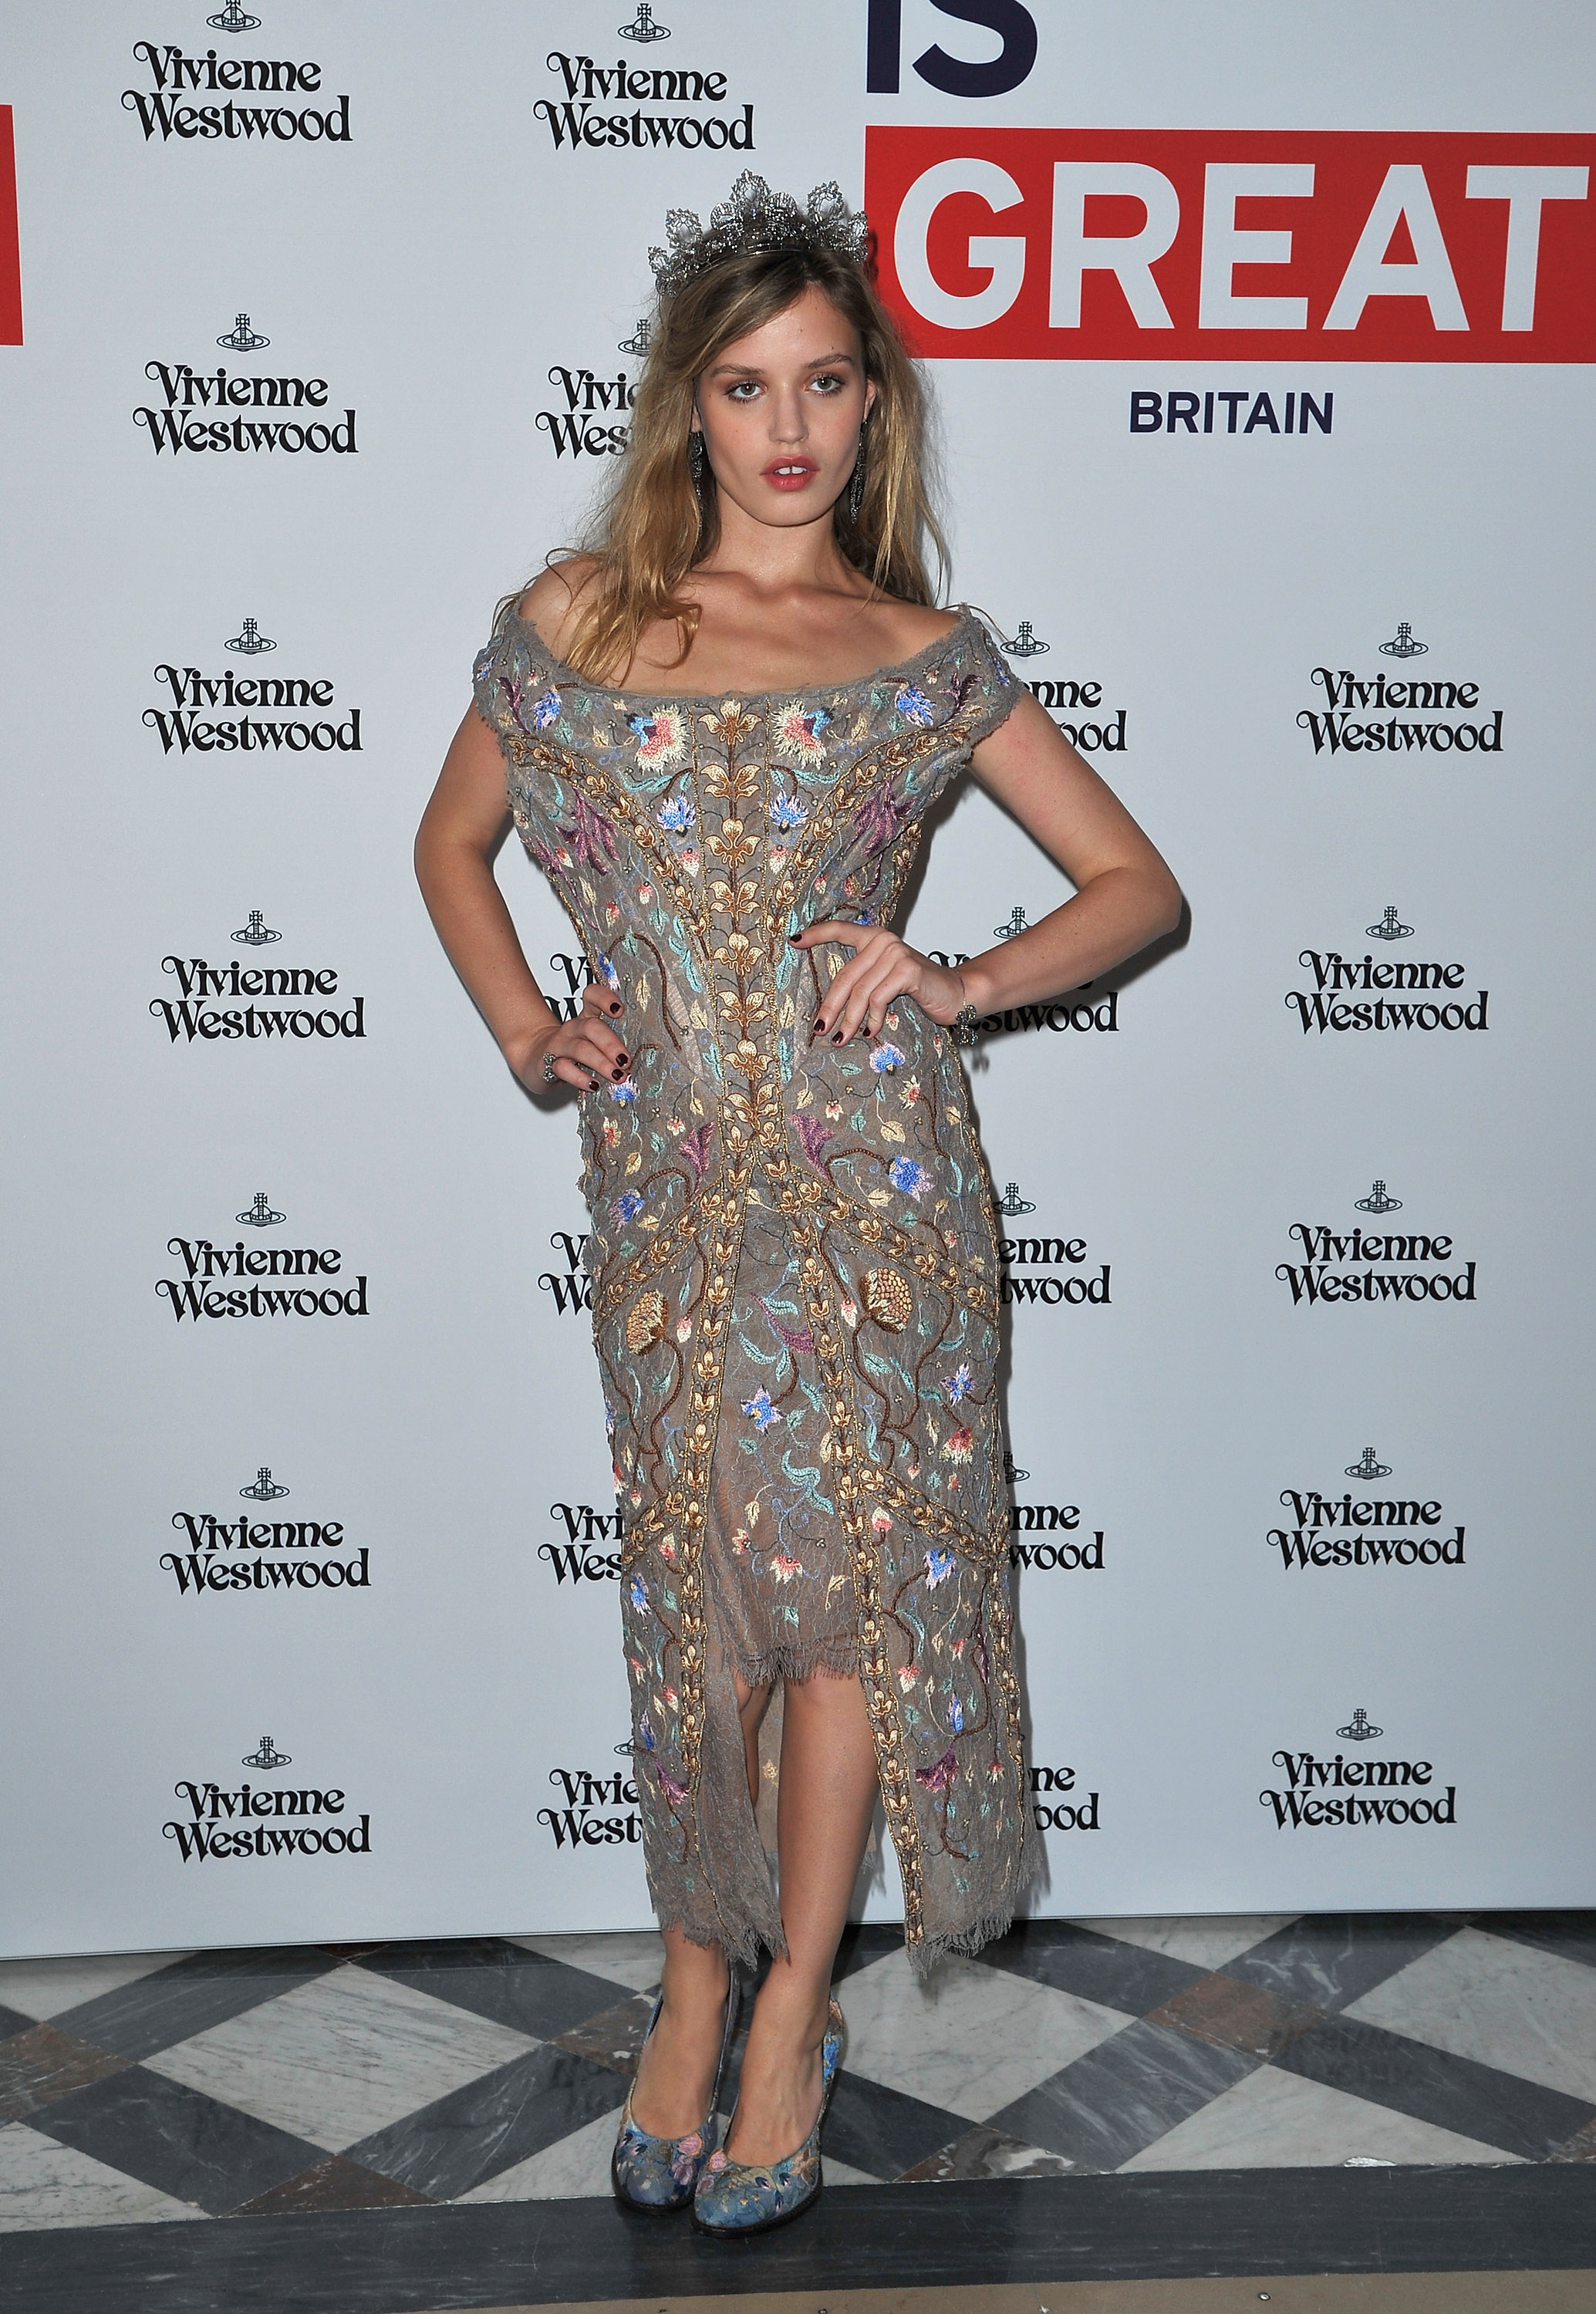 Georgia May Jagger wore one of Vivienne Westwood's sexy bustier-silhouette gowns to the designer's show on Saturday.